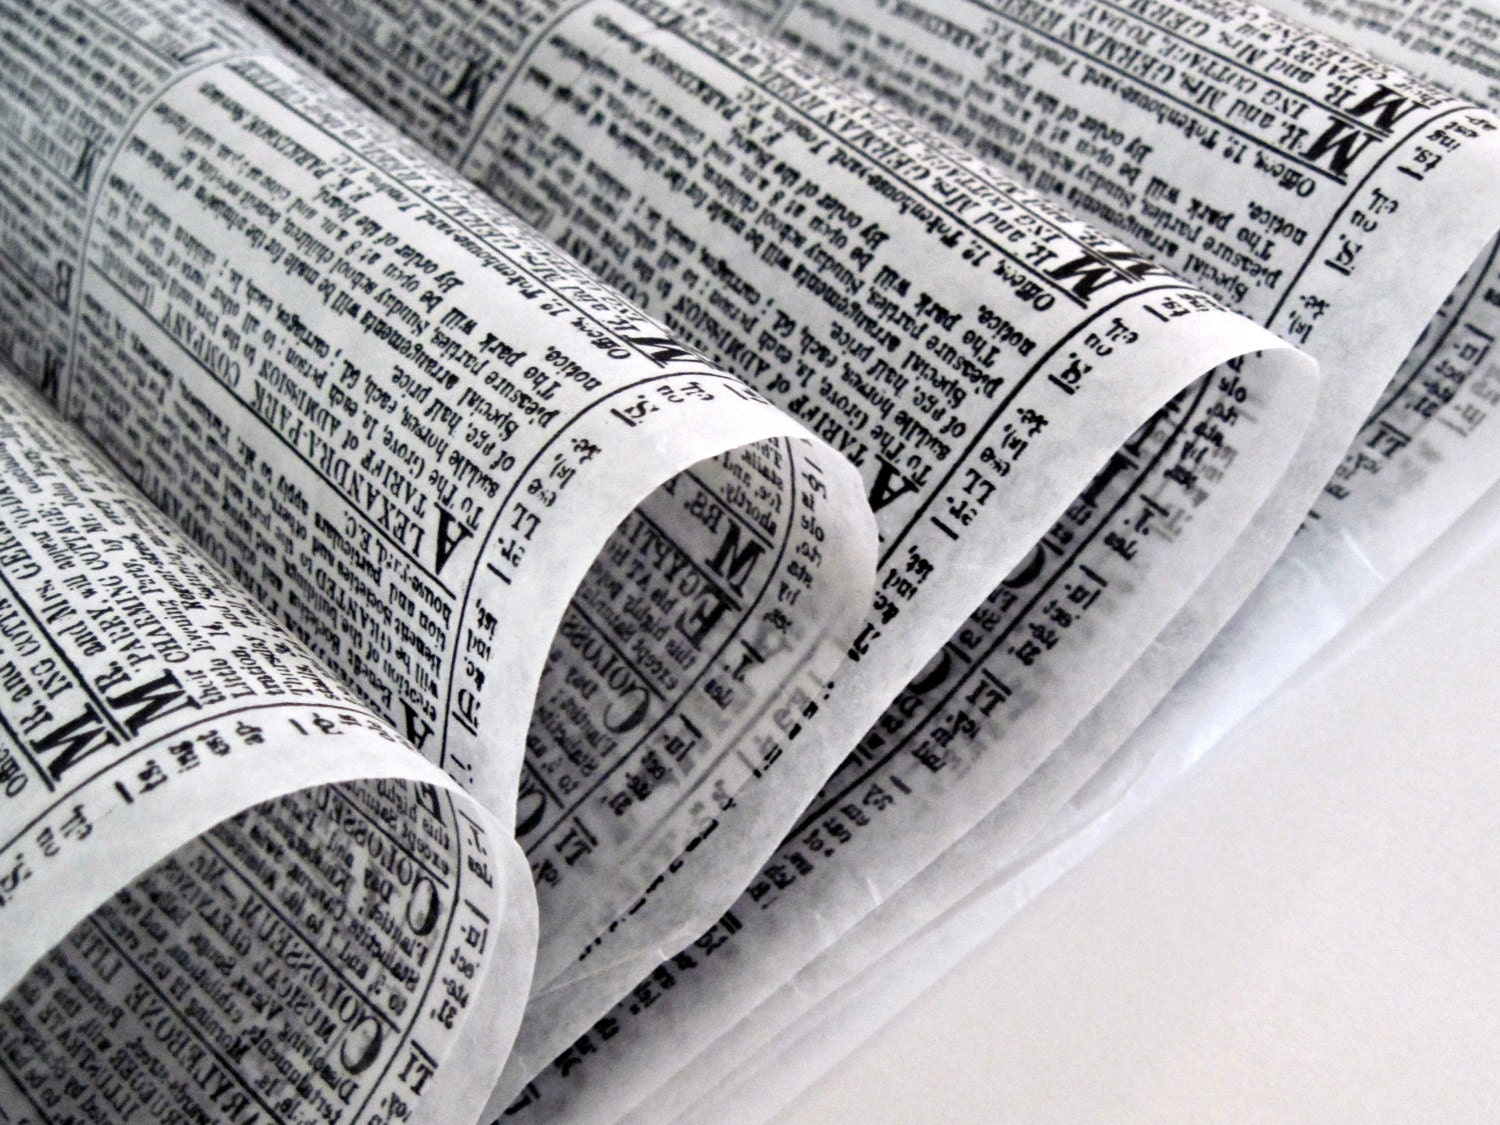 Sandwich Wrapping Paper : Wax paper sheets newsprint black white deli